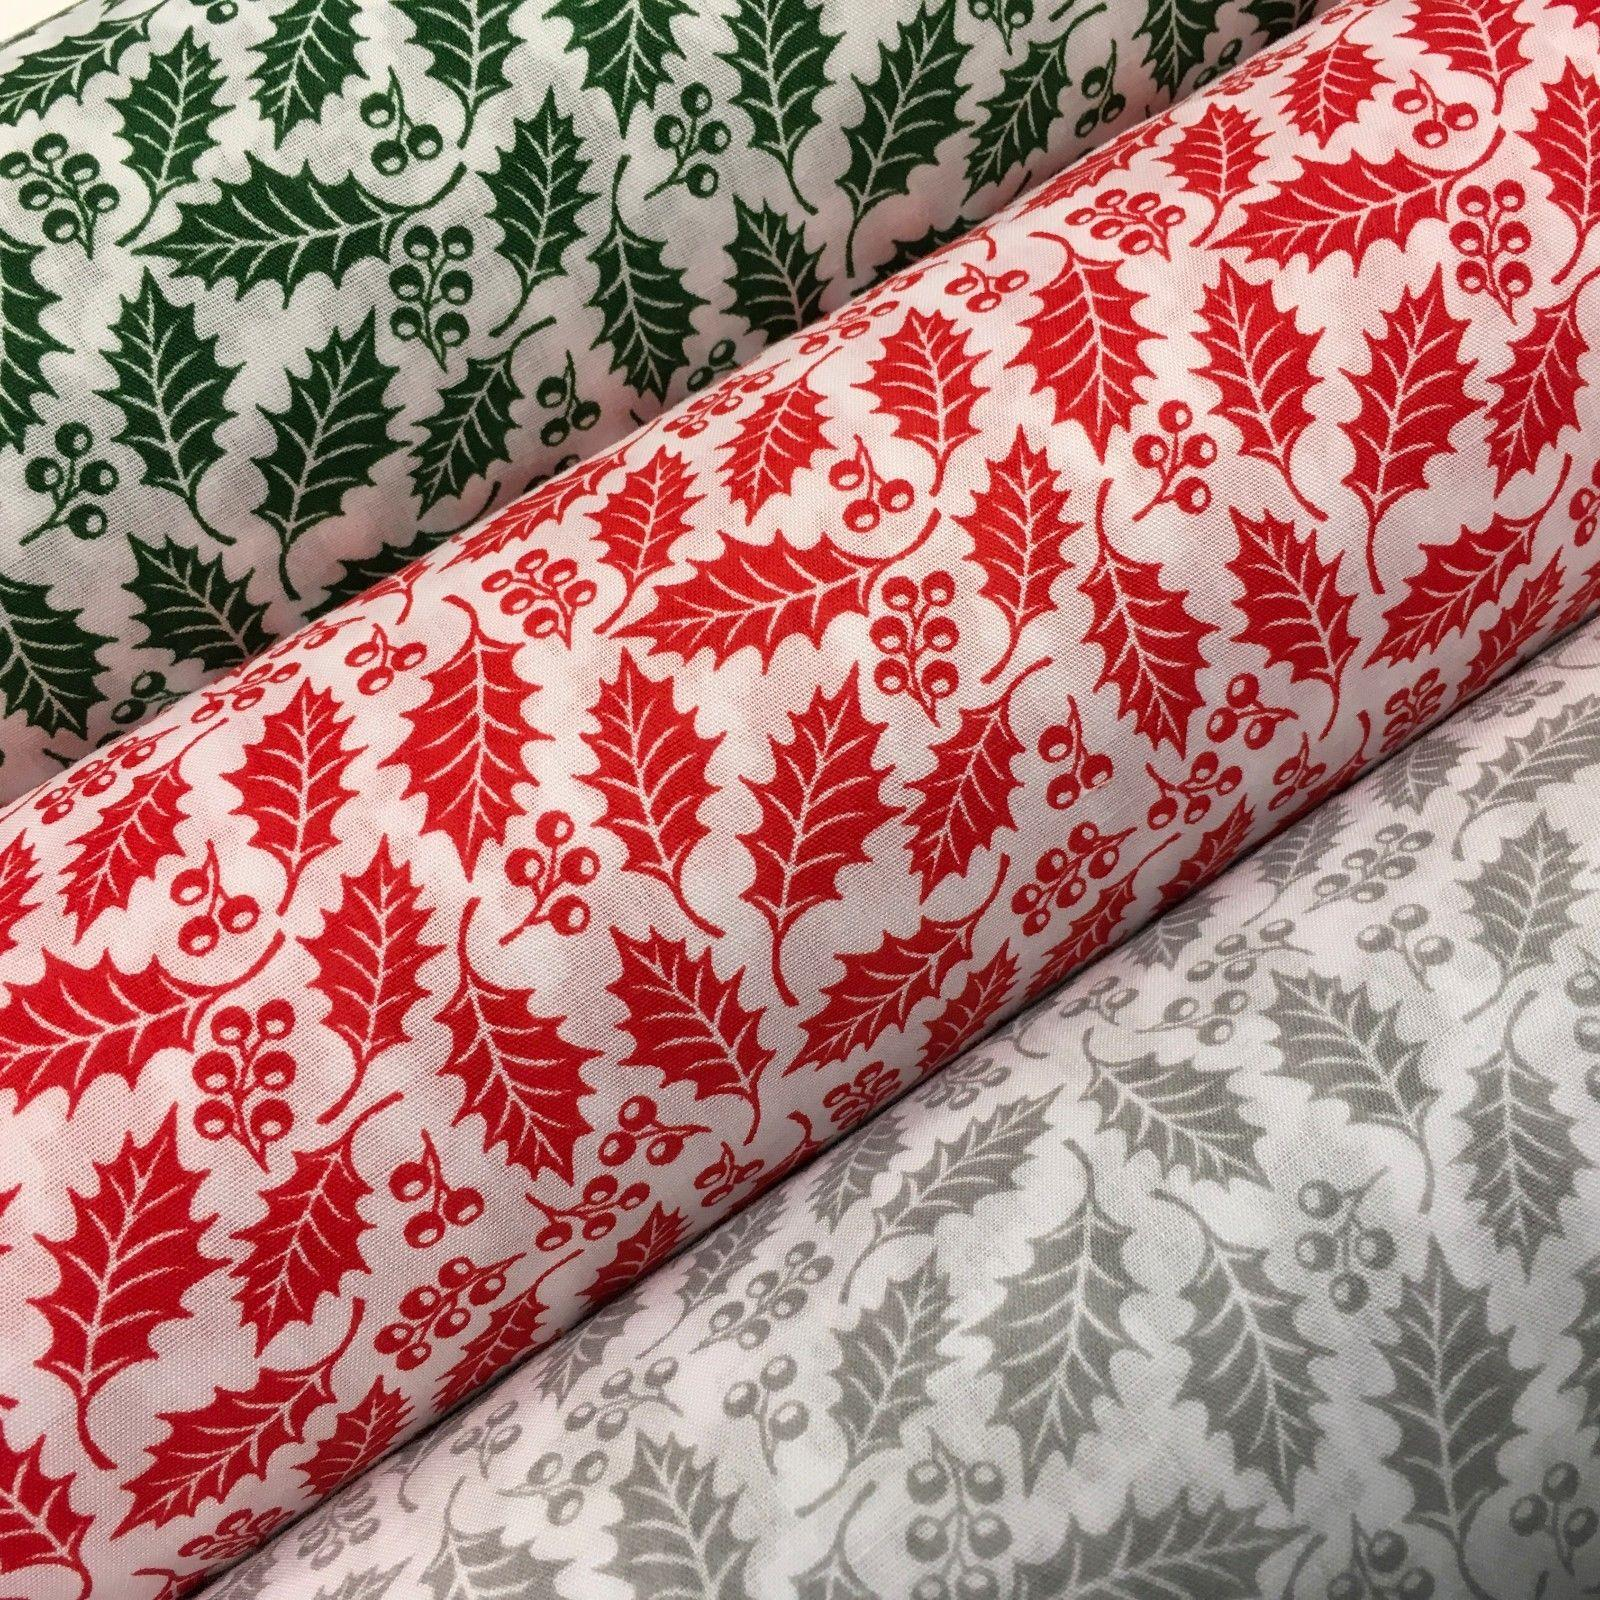 "Christmas Holly Vines and Leaf  poly cotton printed fabric 45"" Wide MD946 Mtex"